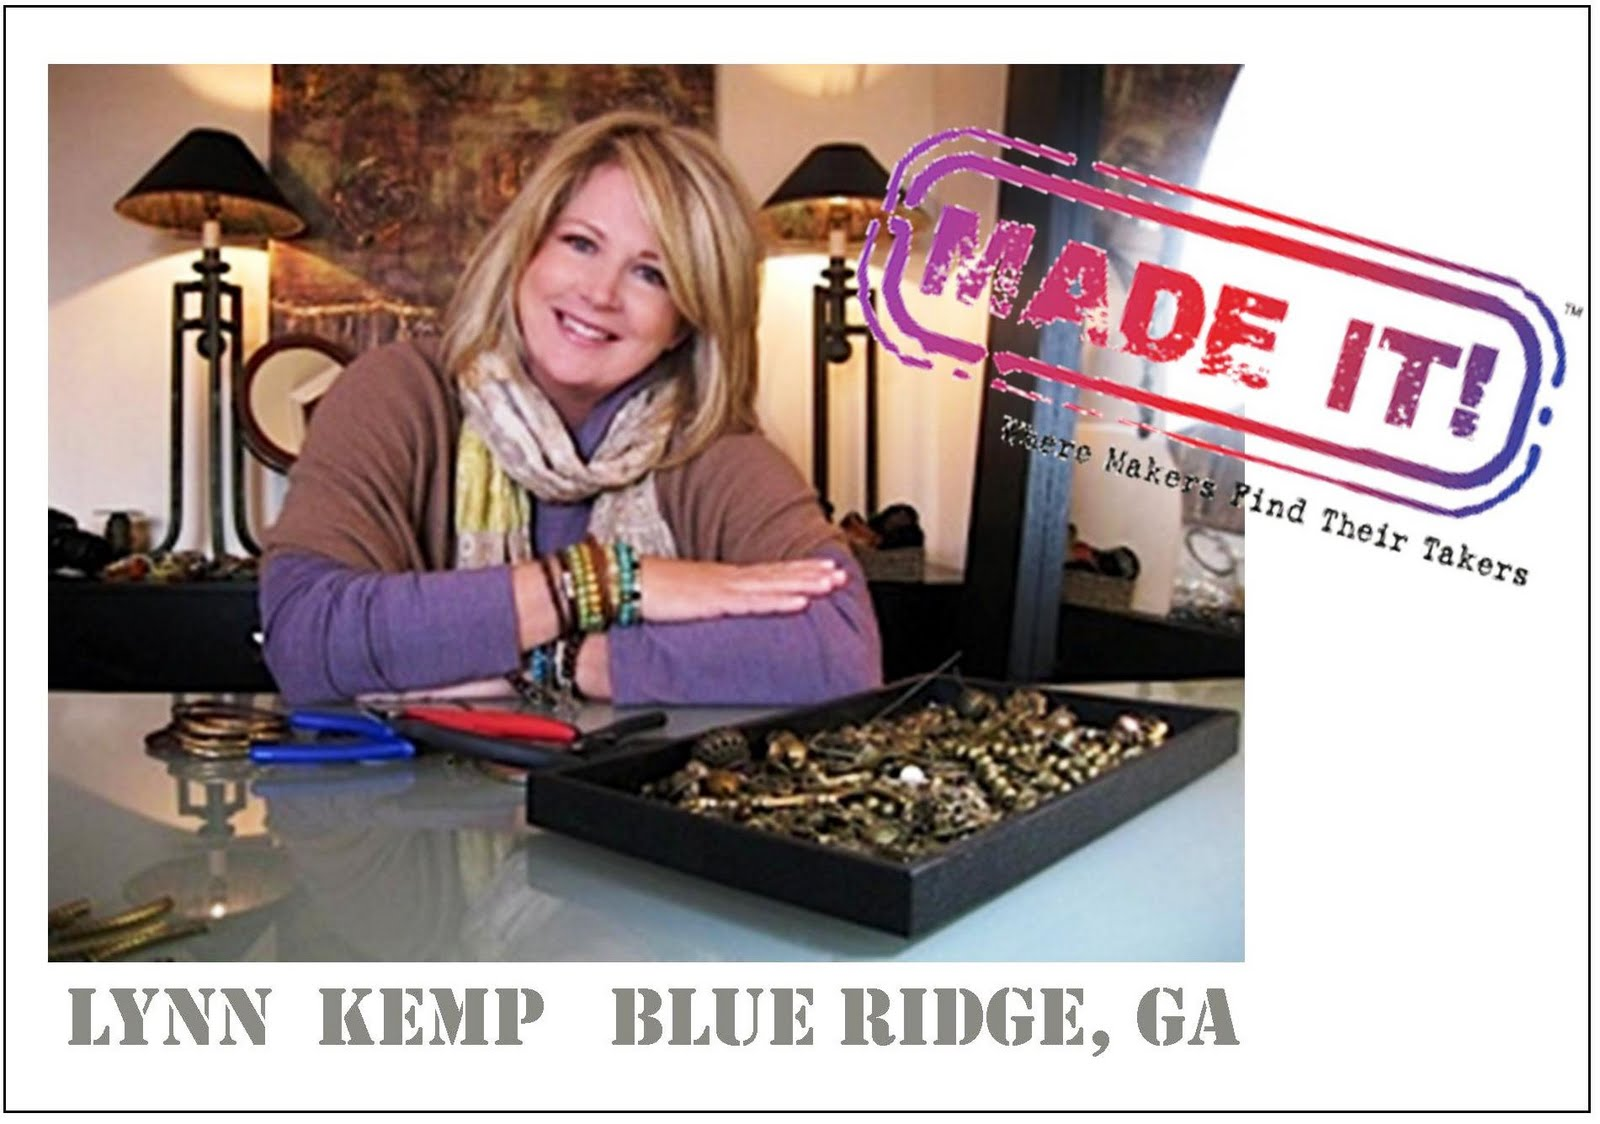 Cucina Pizzeria Blue Ridge The Gatewood Hall Gracious Home Journal Made It Jewelry By Lynn